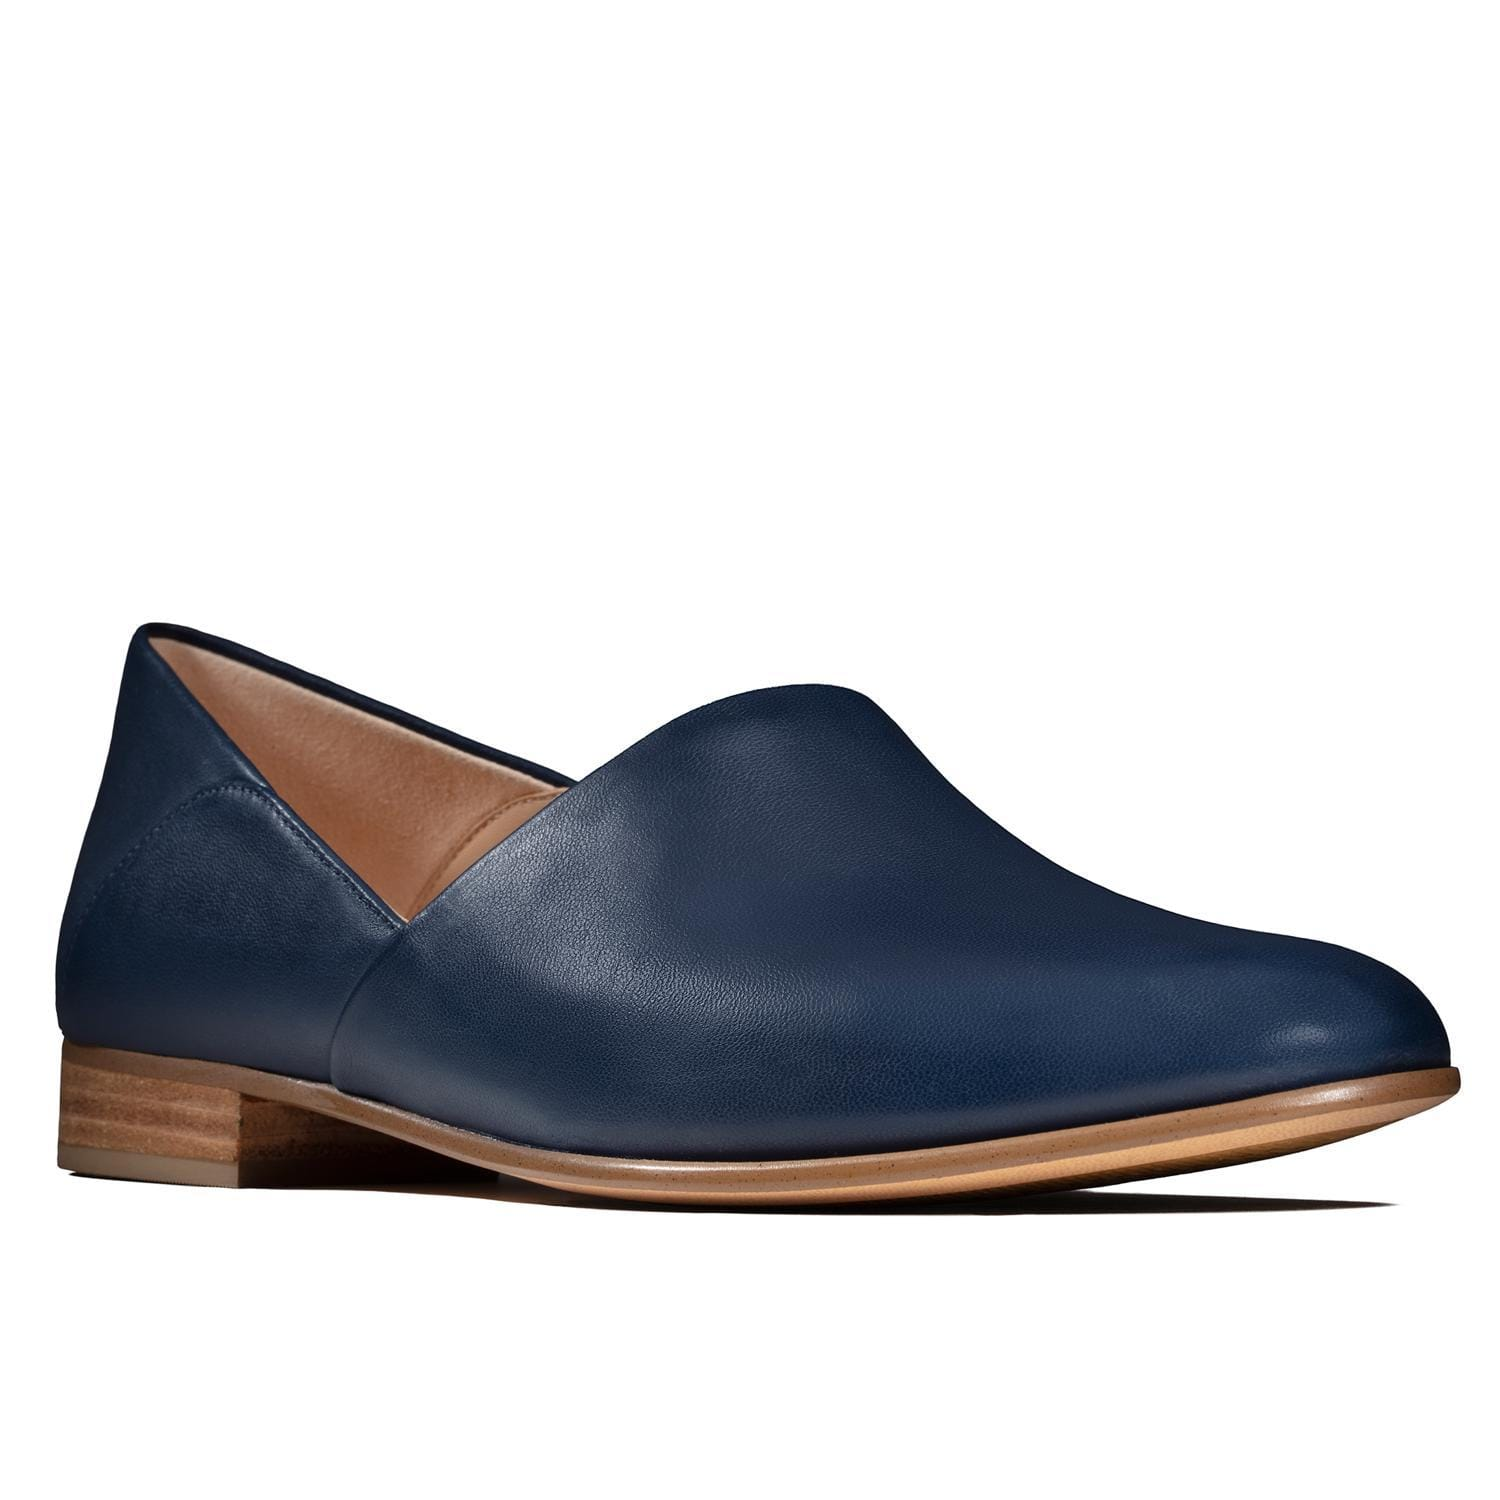 Clarks Pure Tone Loafer | Women's Leather Slip On Shoe | Simons Shoes